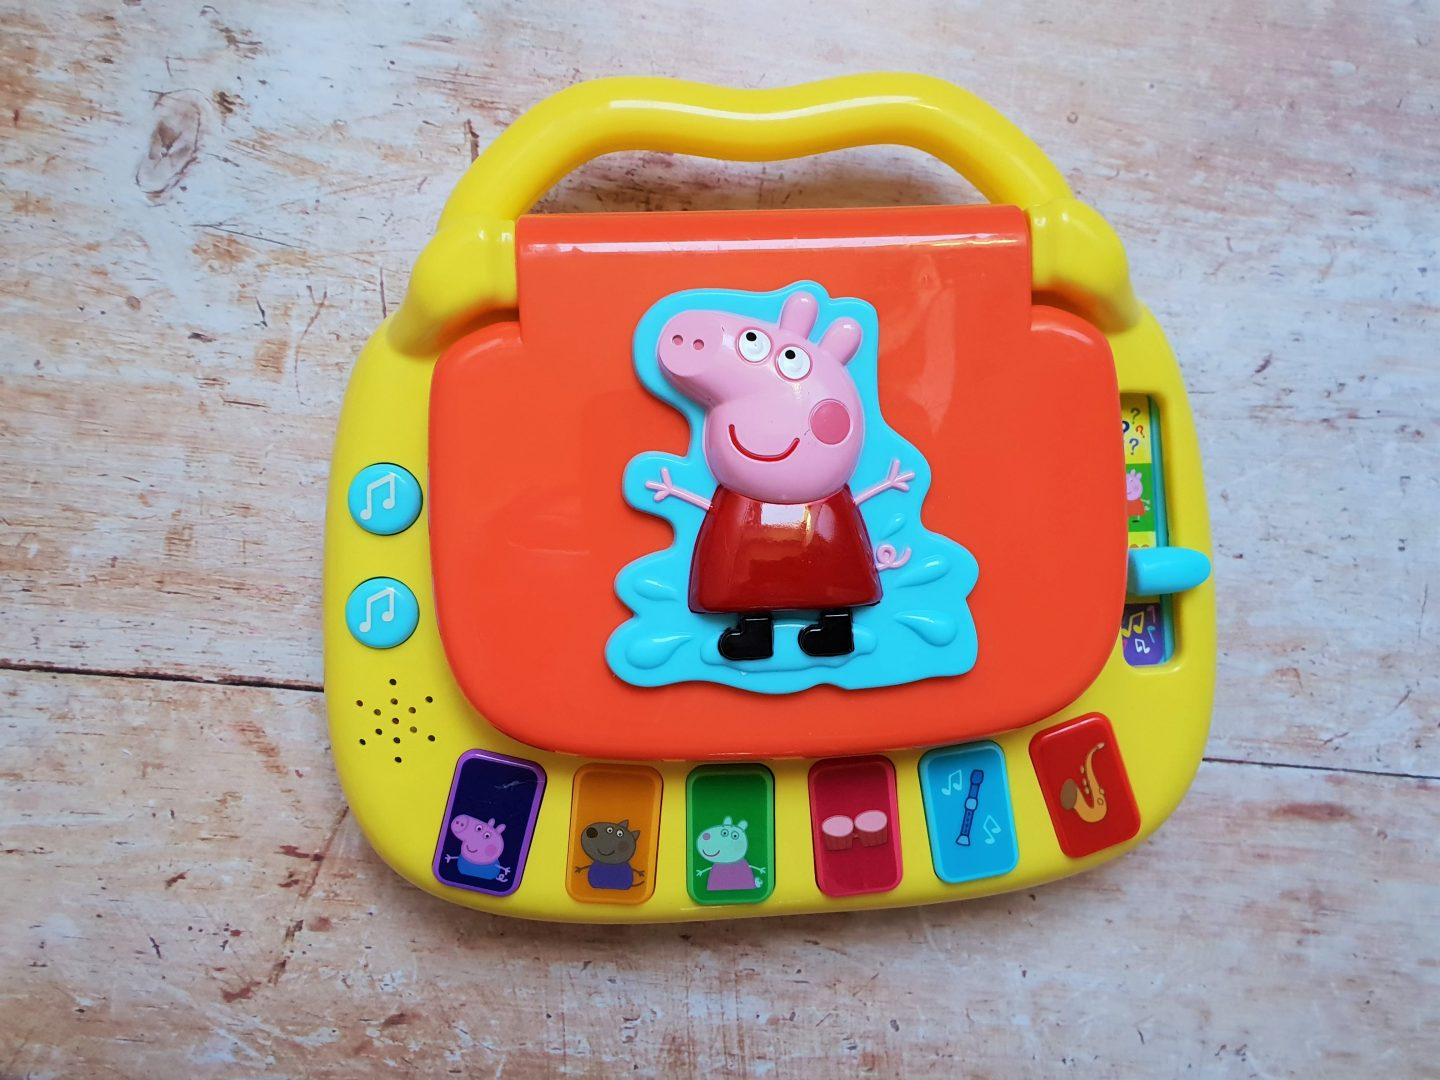 Top view of Peppa Pig Laugh & Learn Laptop